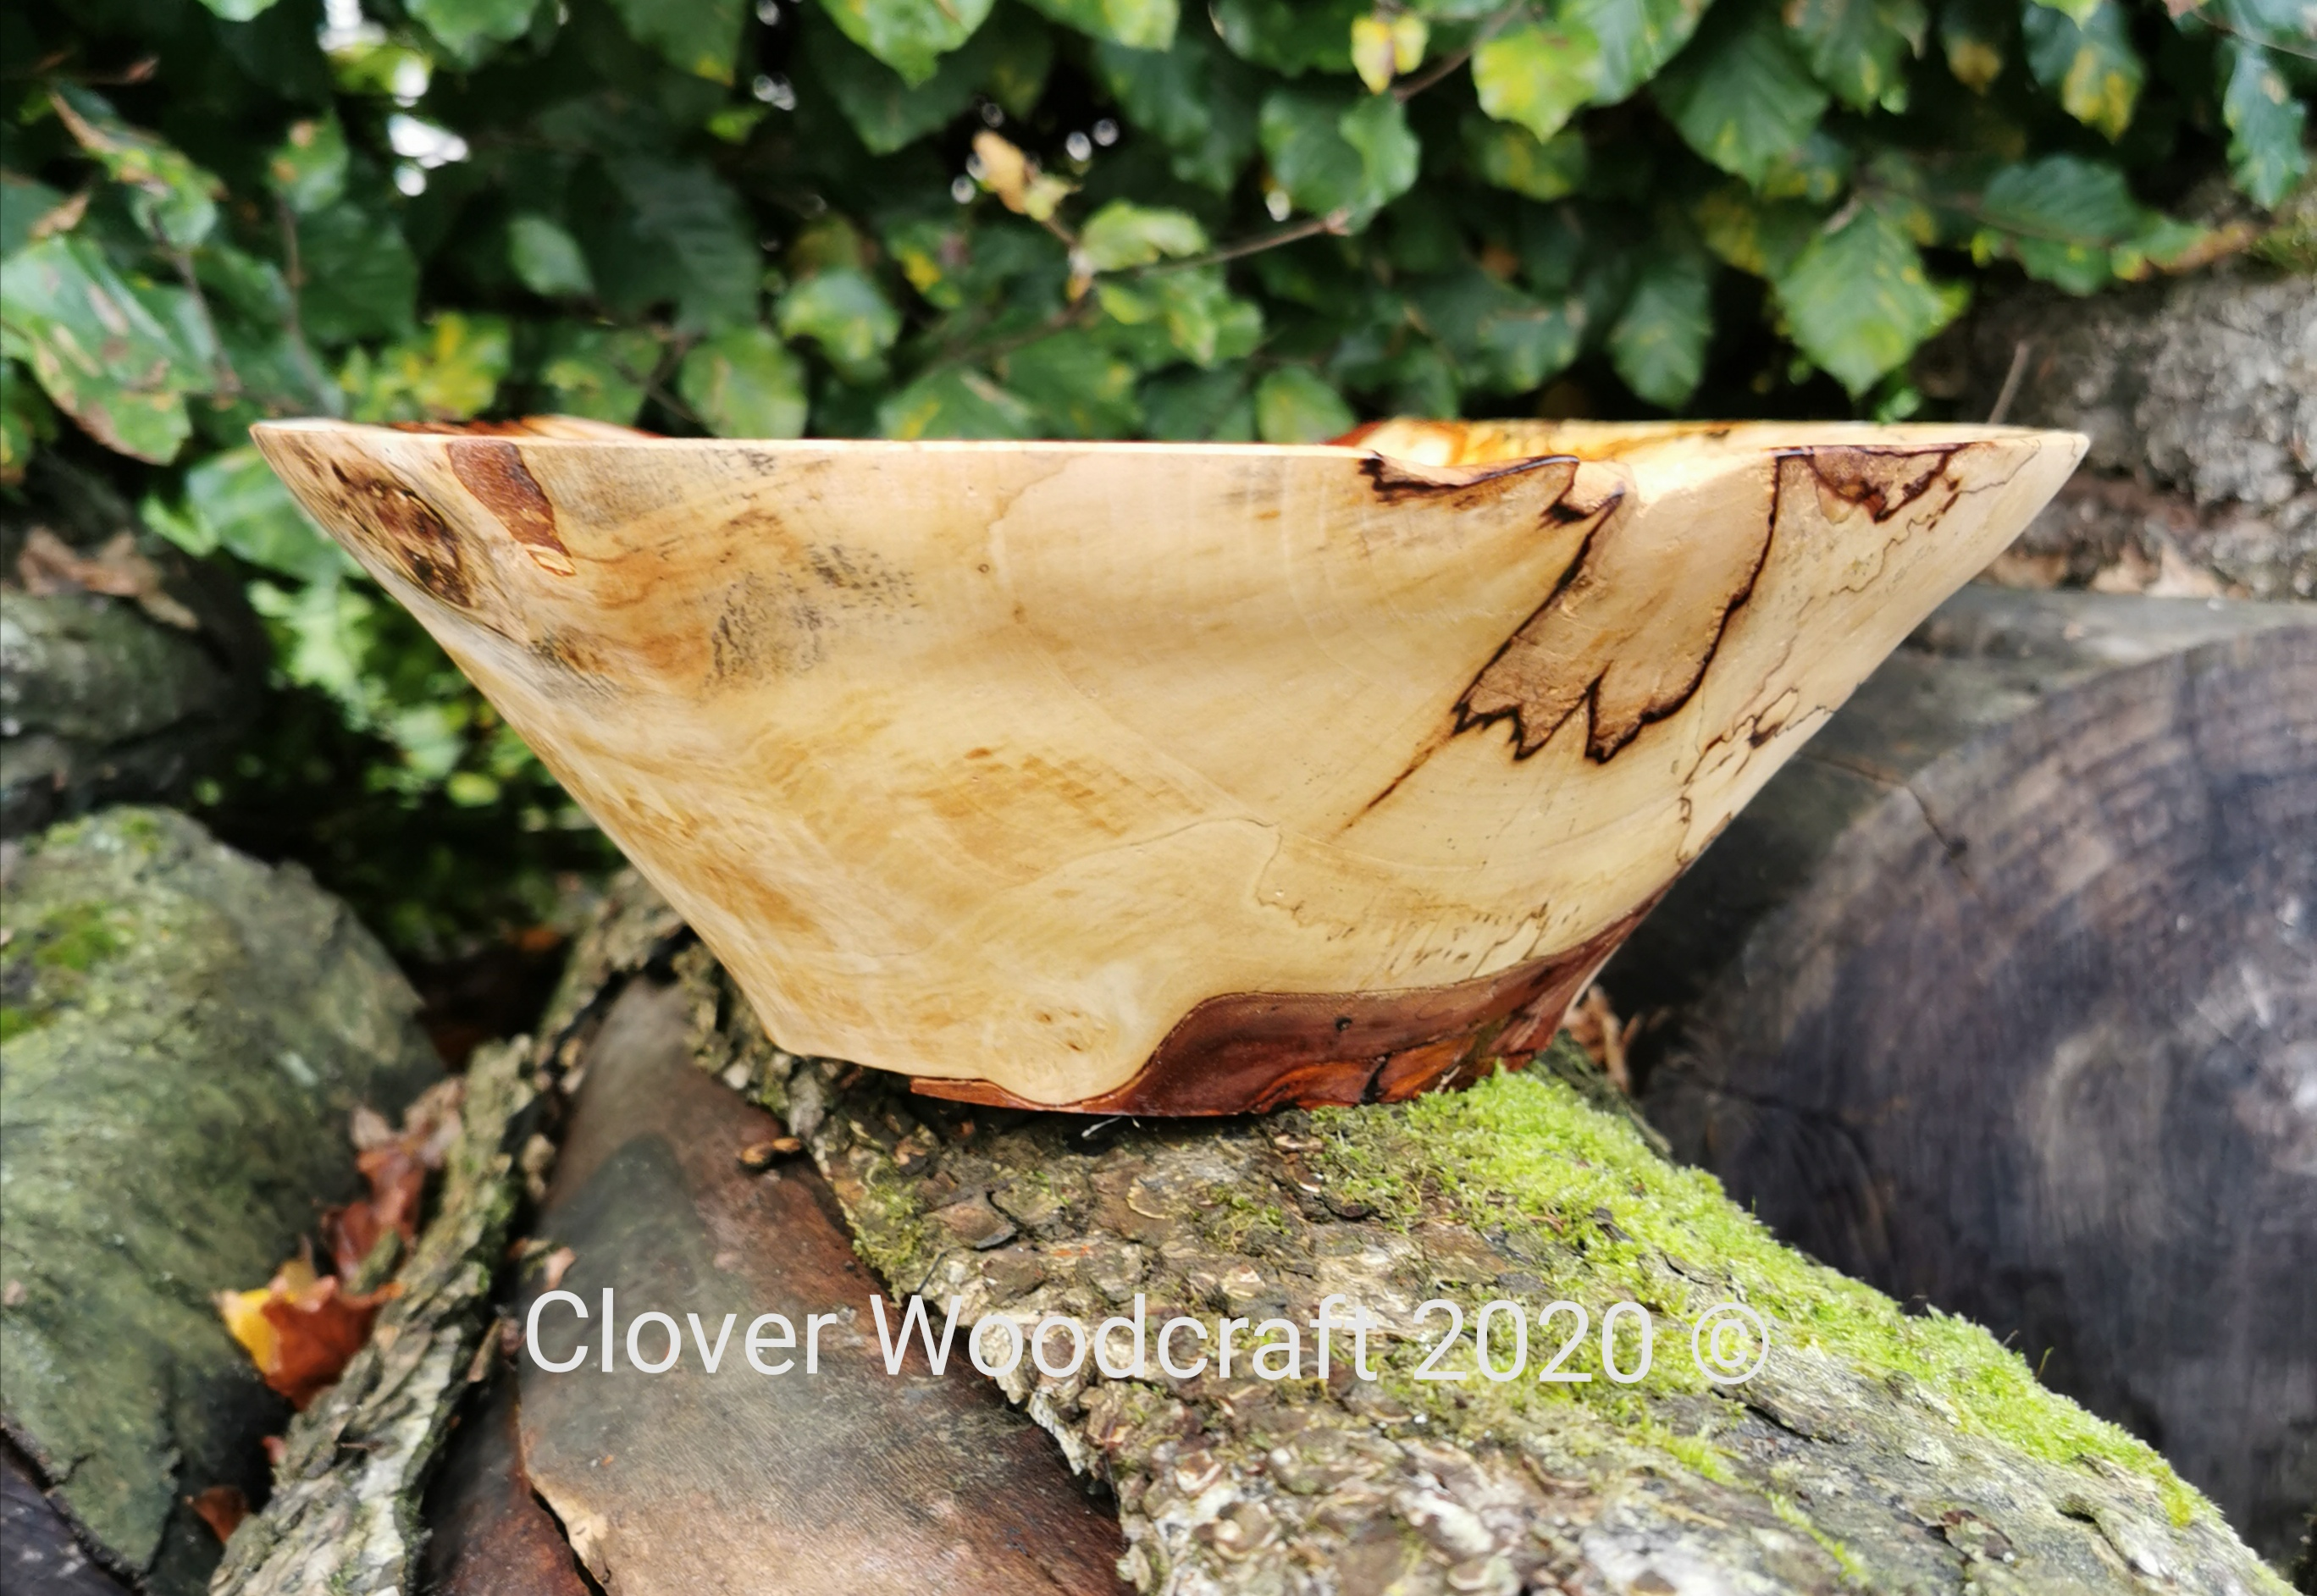 Large Spalted Burl Horse Chestnut Wood Turned Bowl Featuring Bark Inclusions.